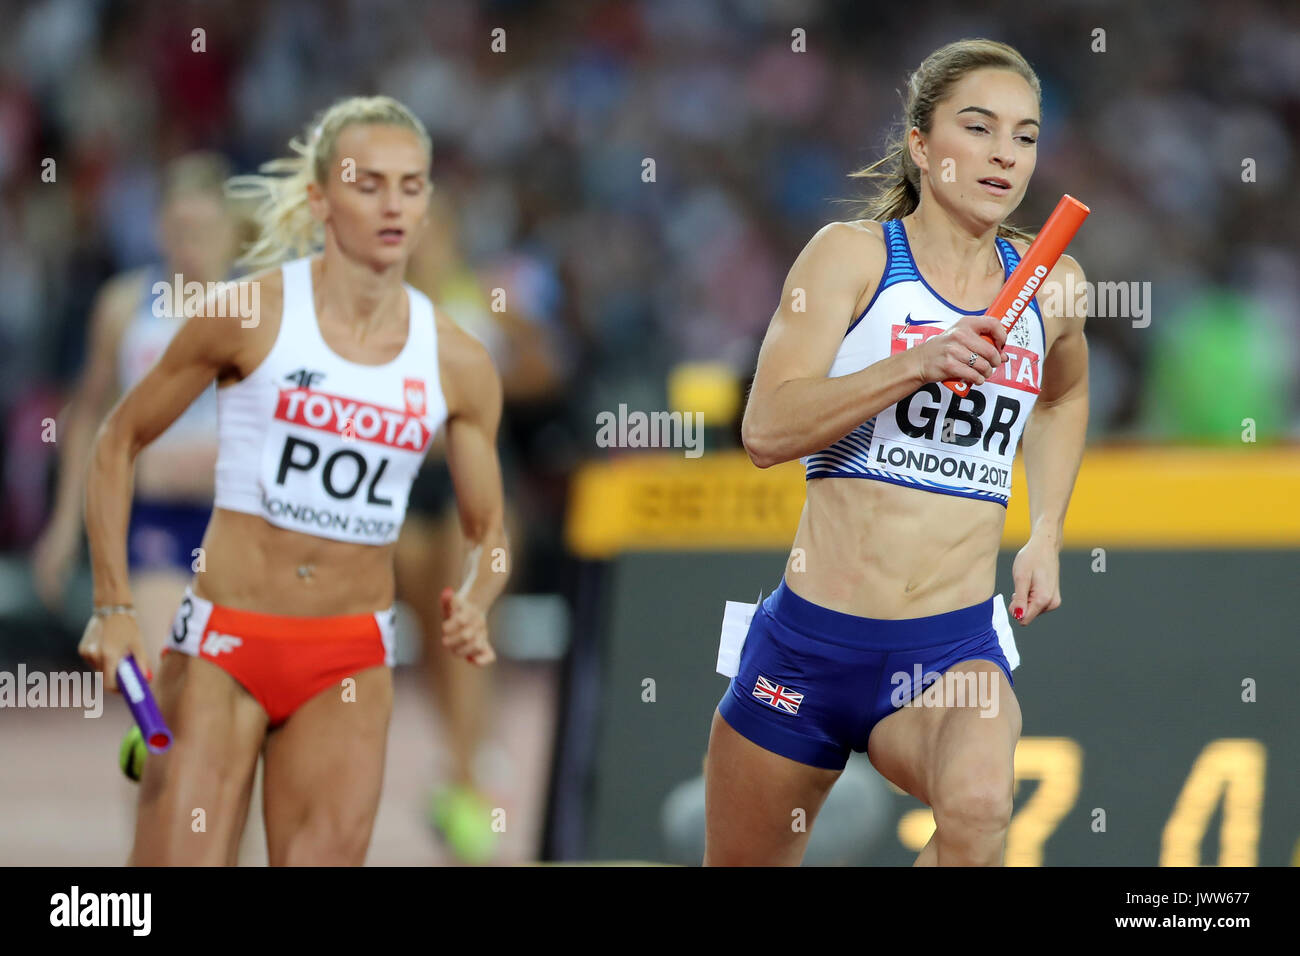 London, UK. 13th August 2017. Emily DIAMOND (Great Britain) & Justyna SWIETY (Poland) on the final leg of the Women's 4 x 400m Final at the 2017 IAAF World Championships, Queen Elizabeth Olympic Park, Stratford, London, UK. Credit: Simon Balson/Alamy Live News - Stock Image